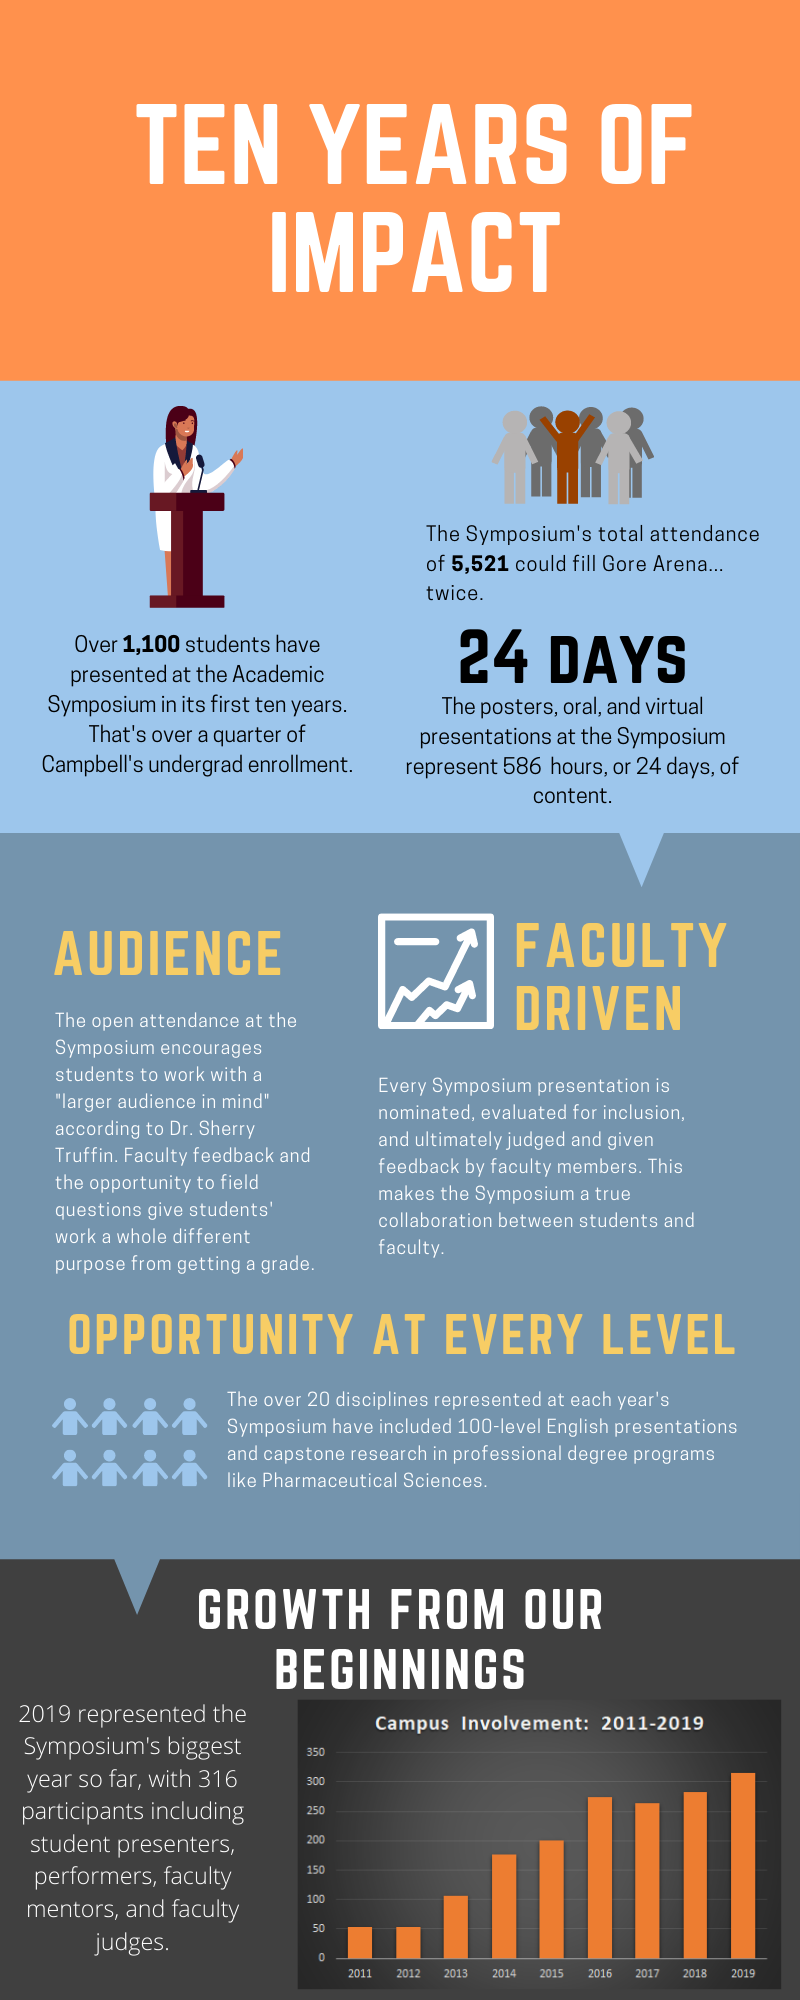 Symposium 10th Anniversary Infographic